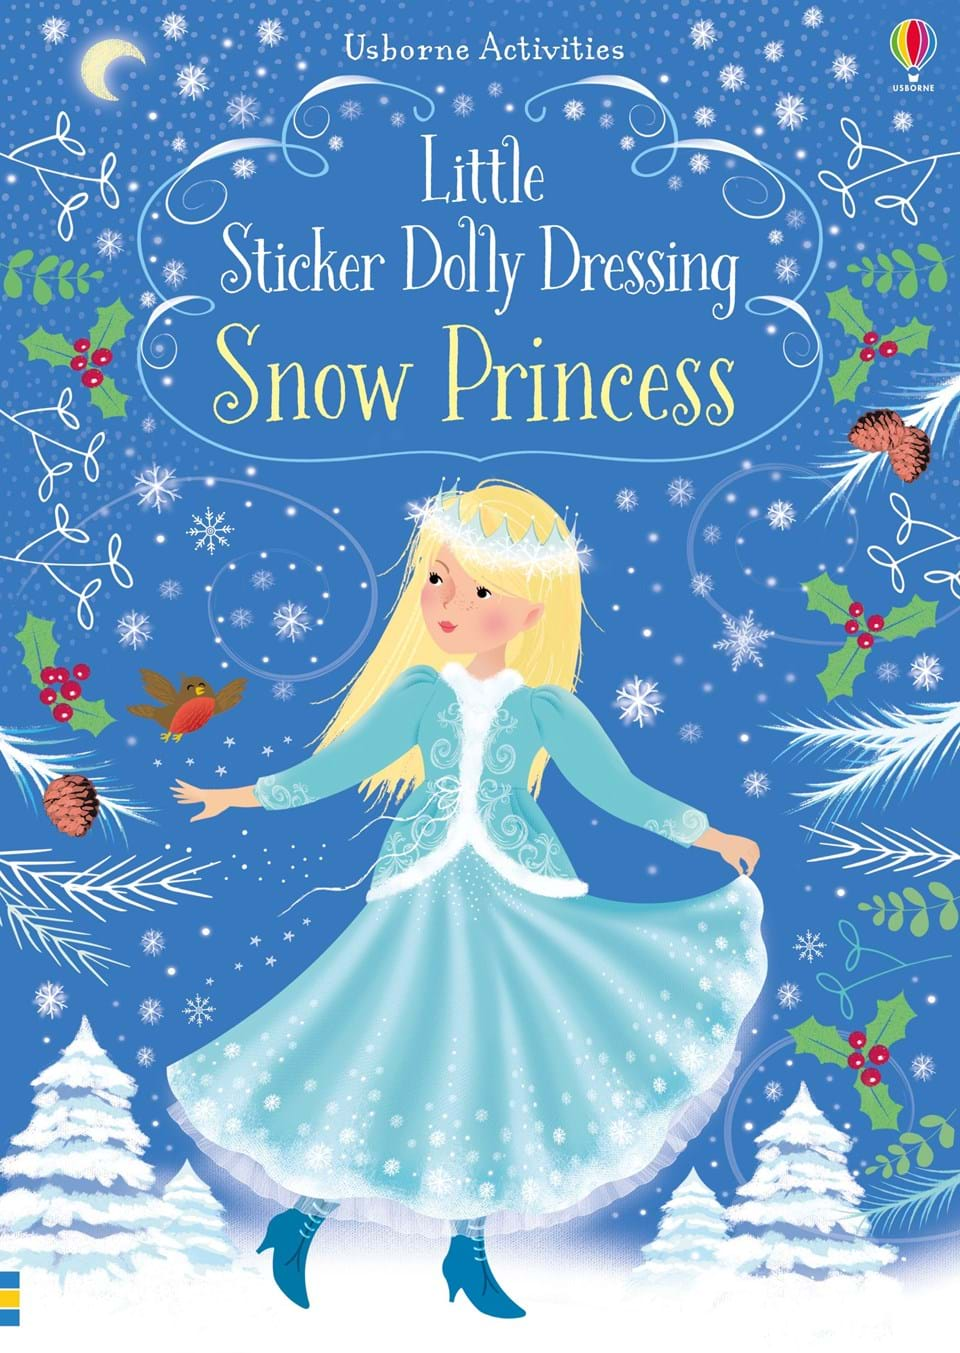 Little Sticker Dolly Dressing-Snow Princesses